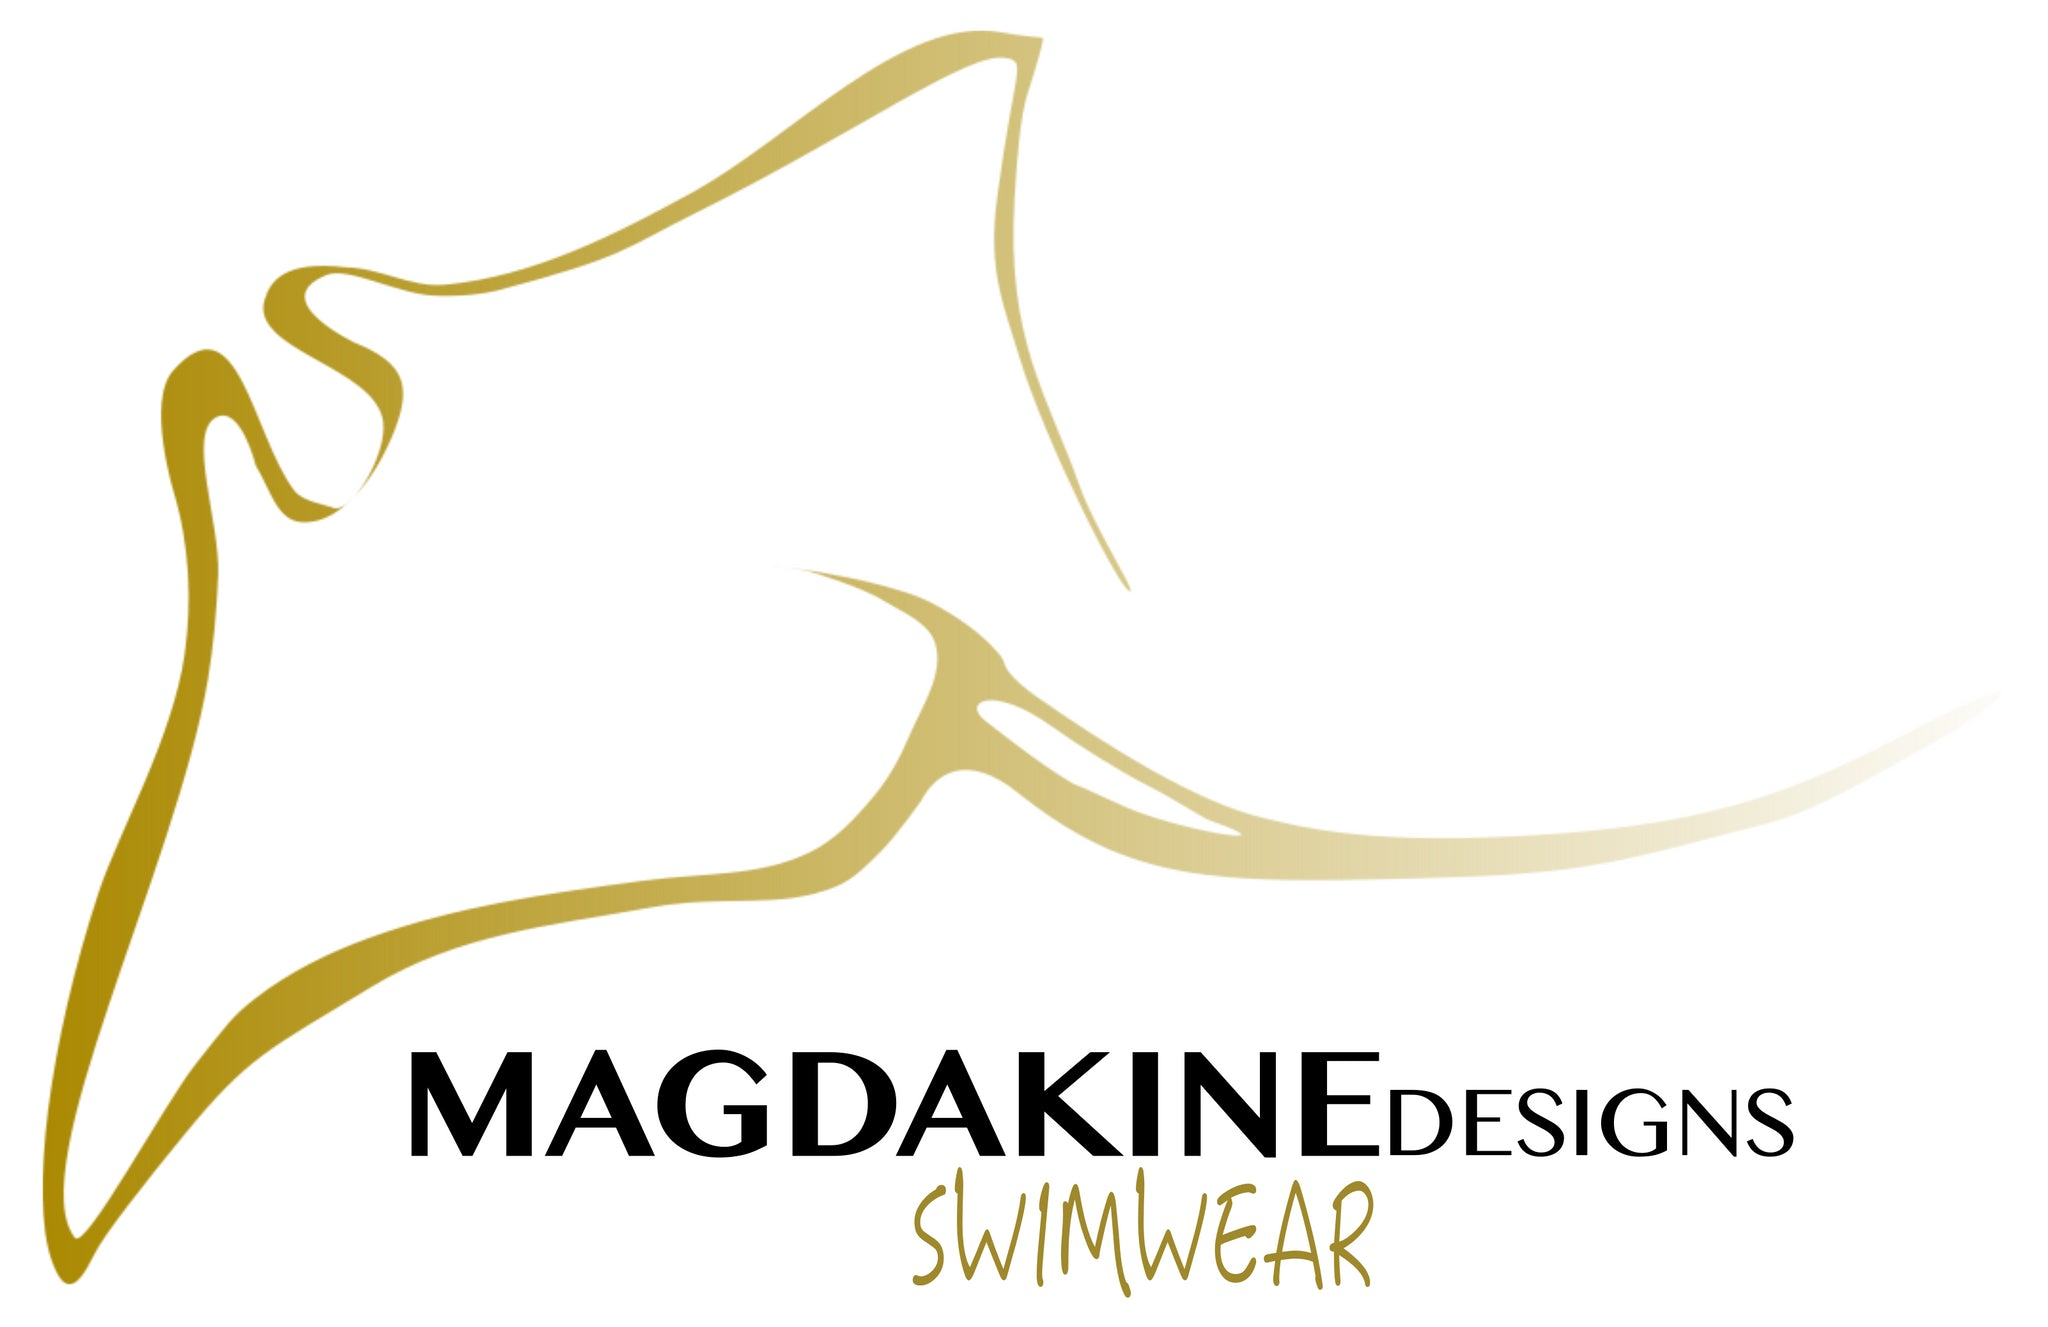 magdakinedeigns manta ray logo gold luxury